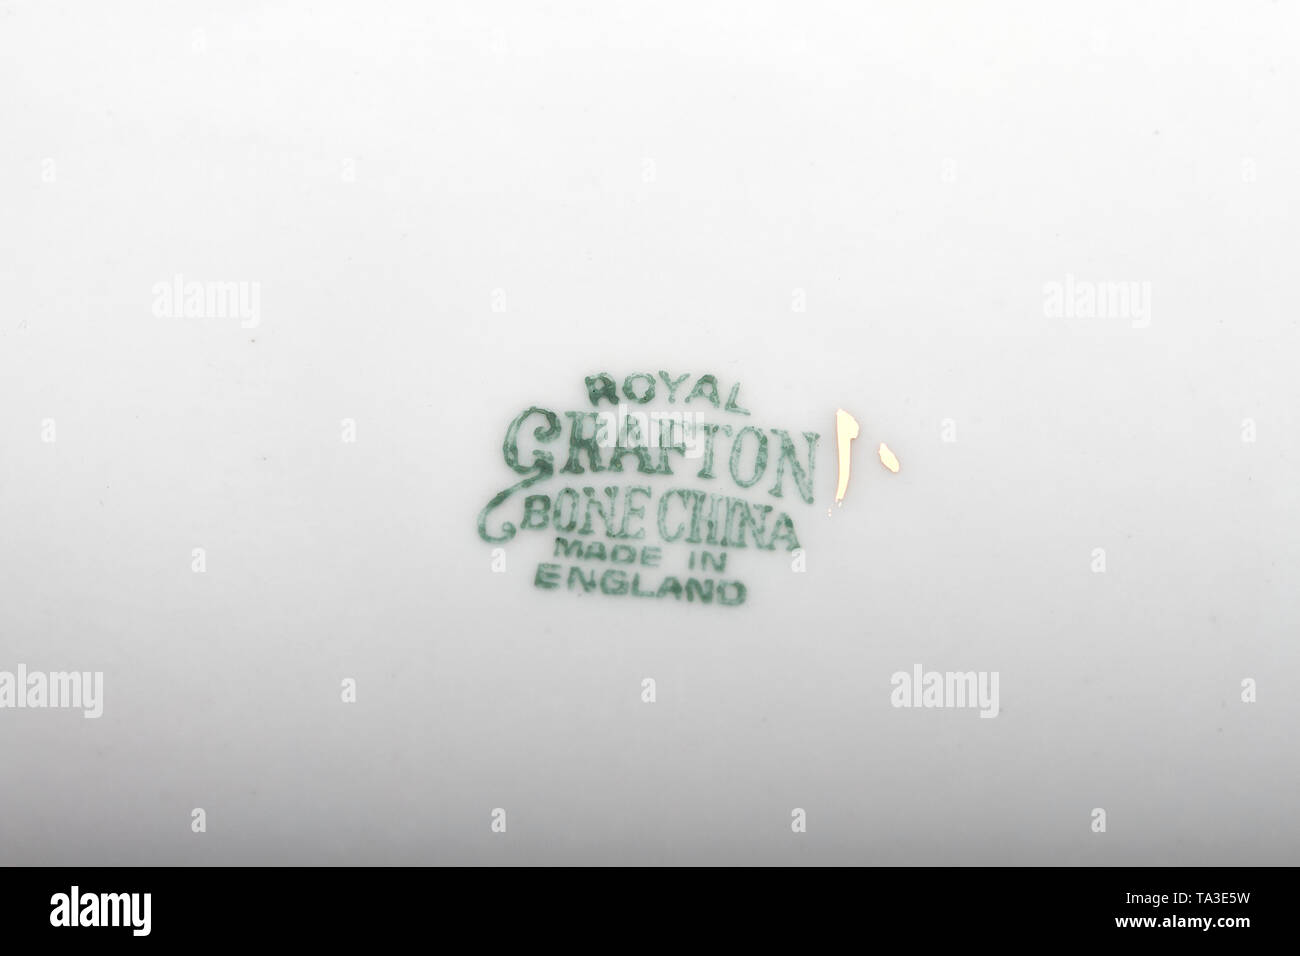 datant Royal Grafton